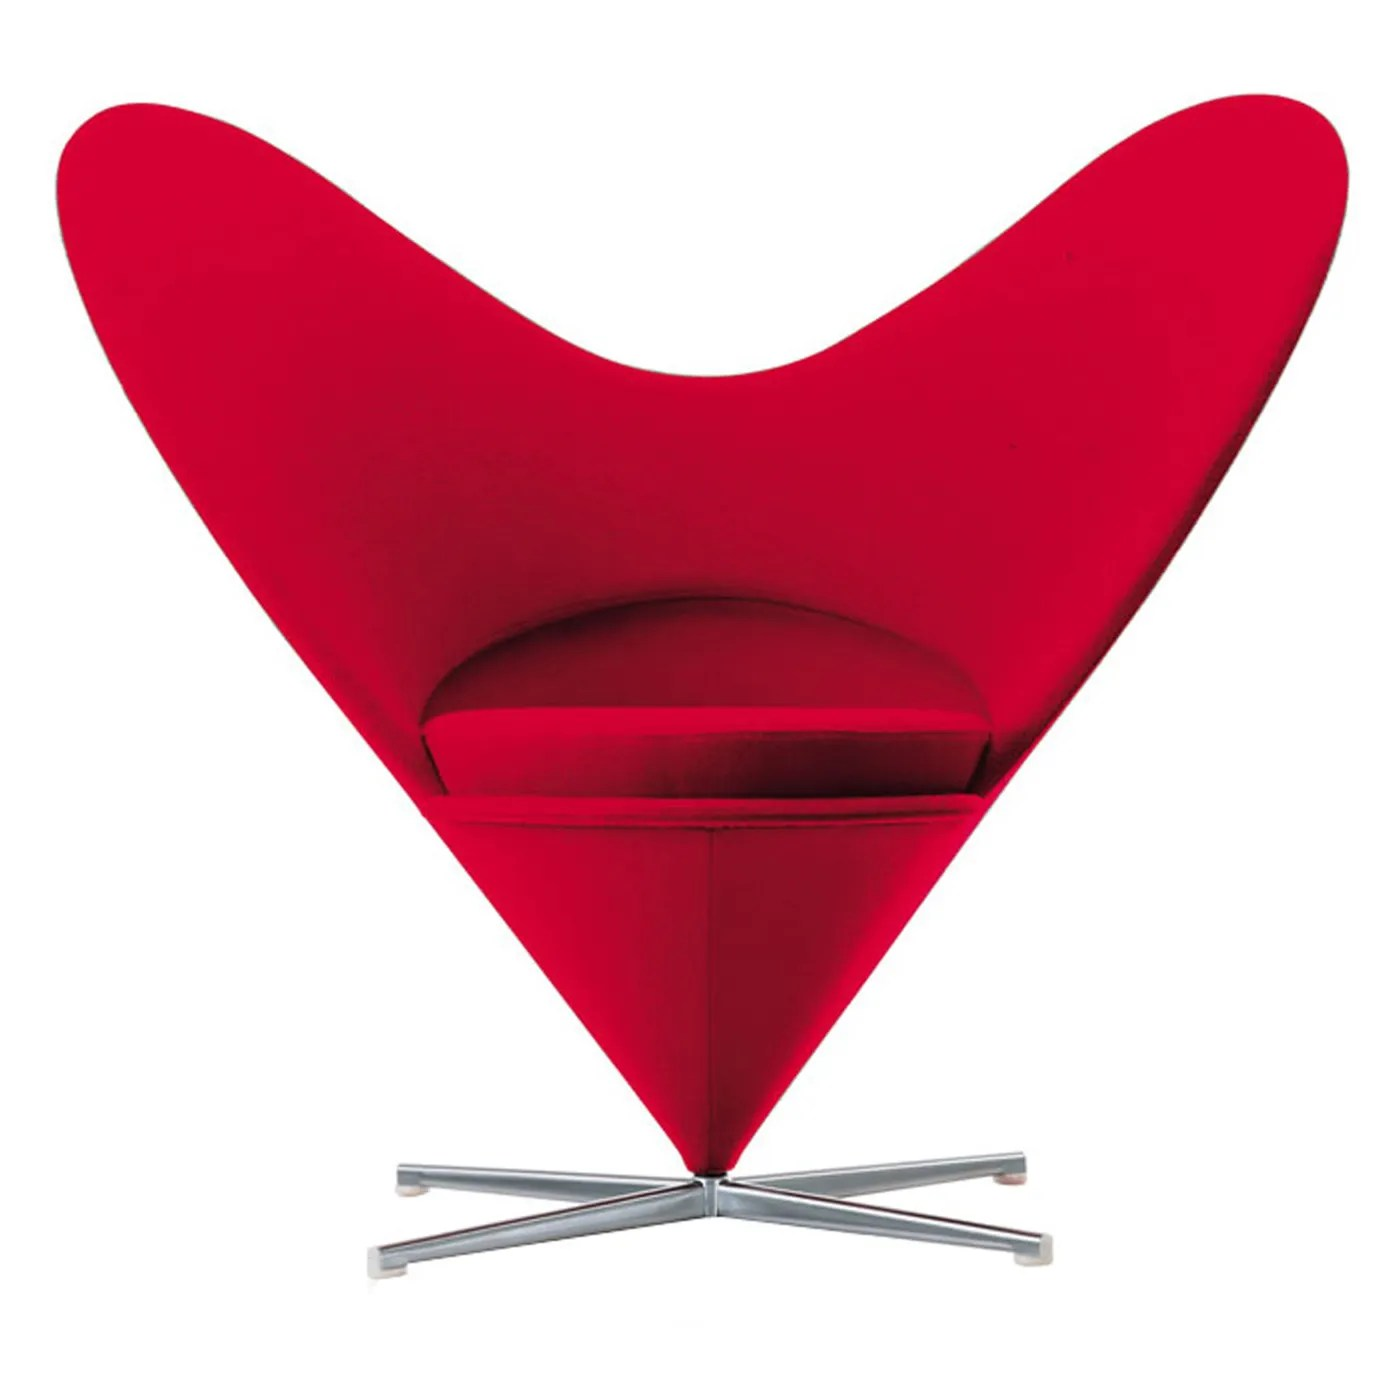 Panton Chairs Vitra Heart Cone Chair | Heal's